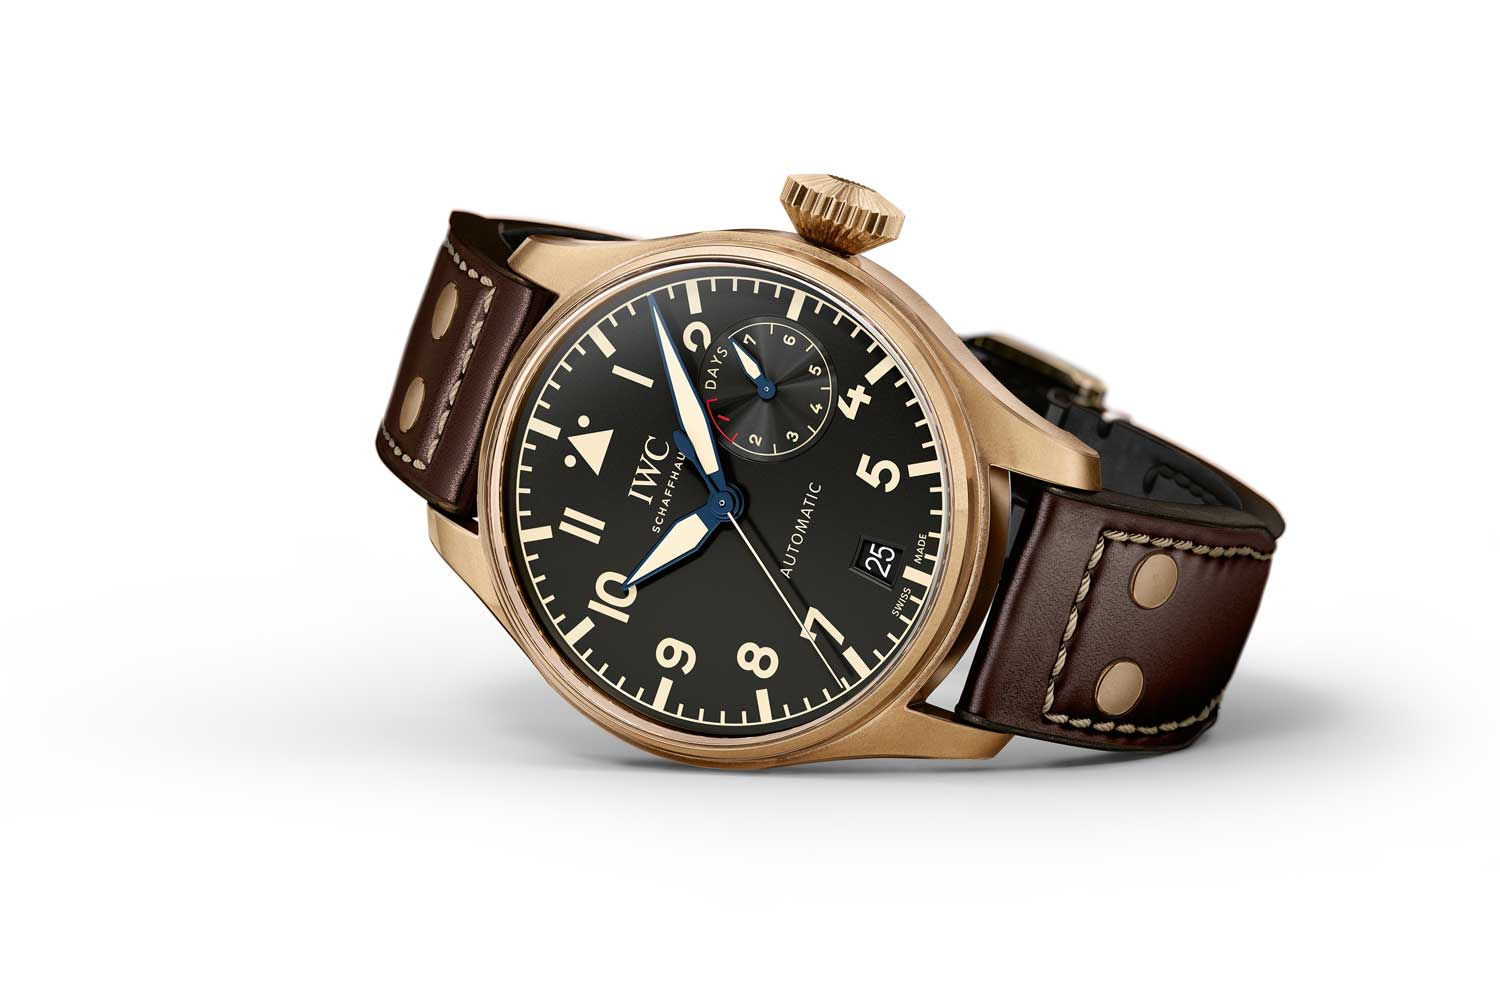 Big Pilot's Watch Heritage in Bronze, ref. IW501005